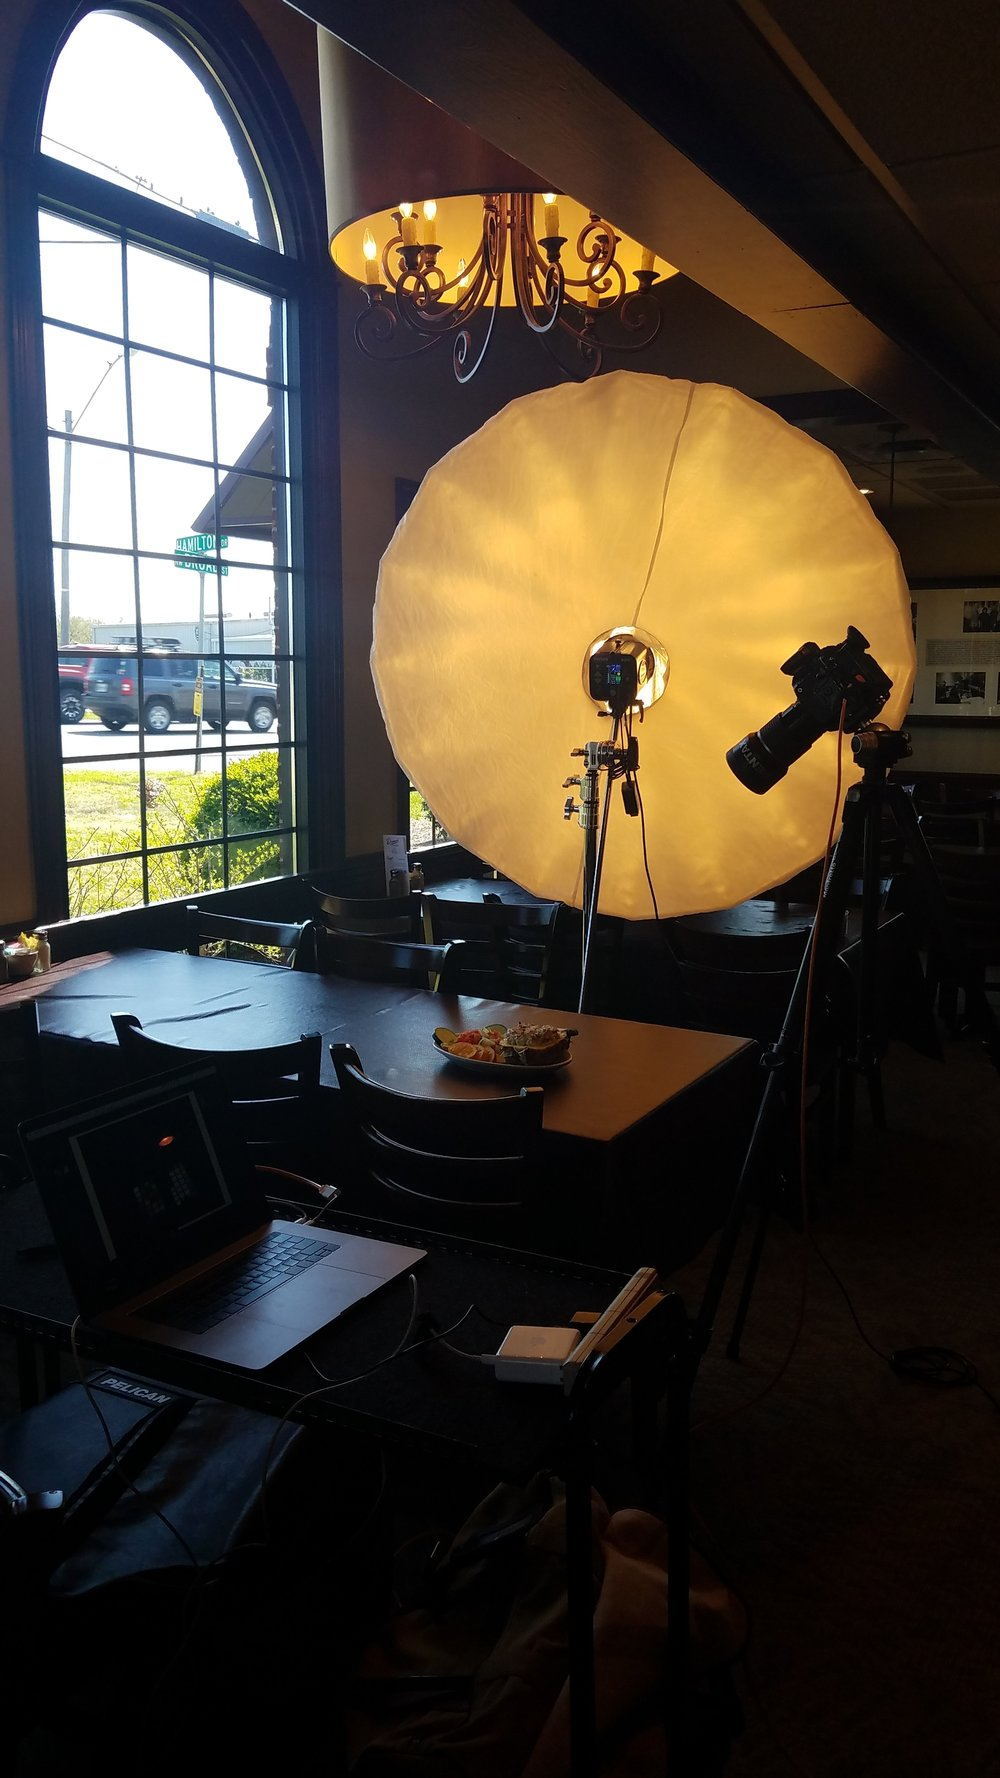 A little behind the scenes action showing my camera and lighting setup.